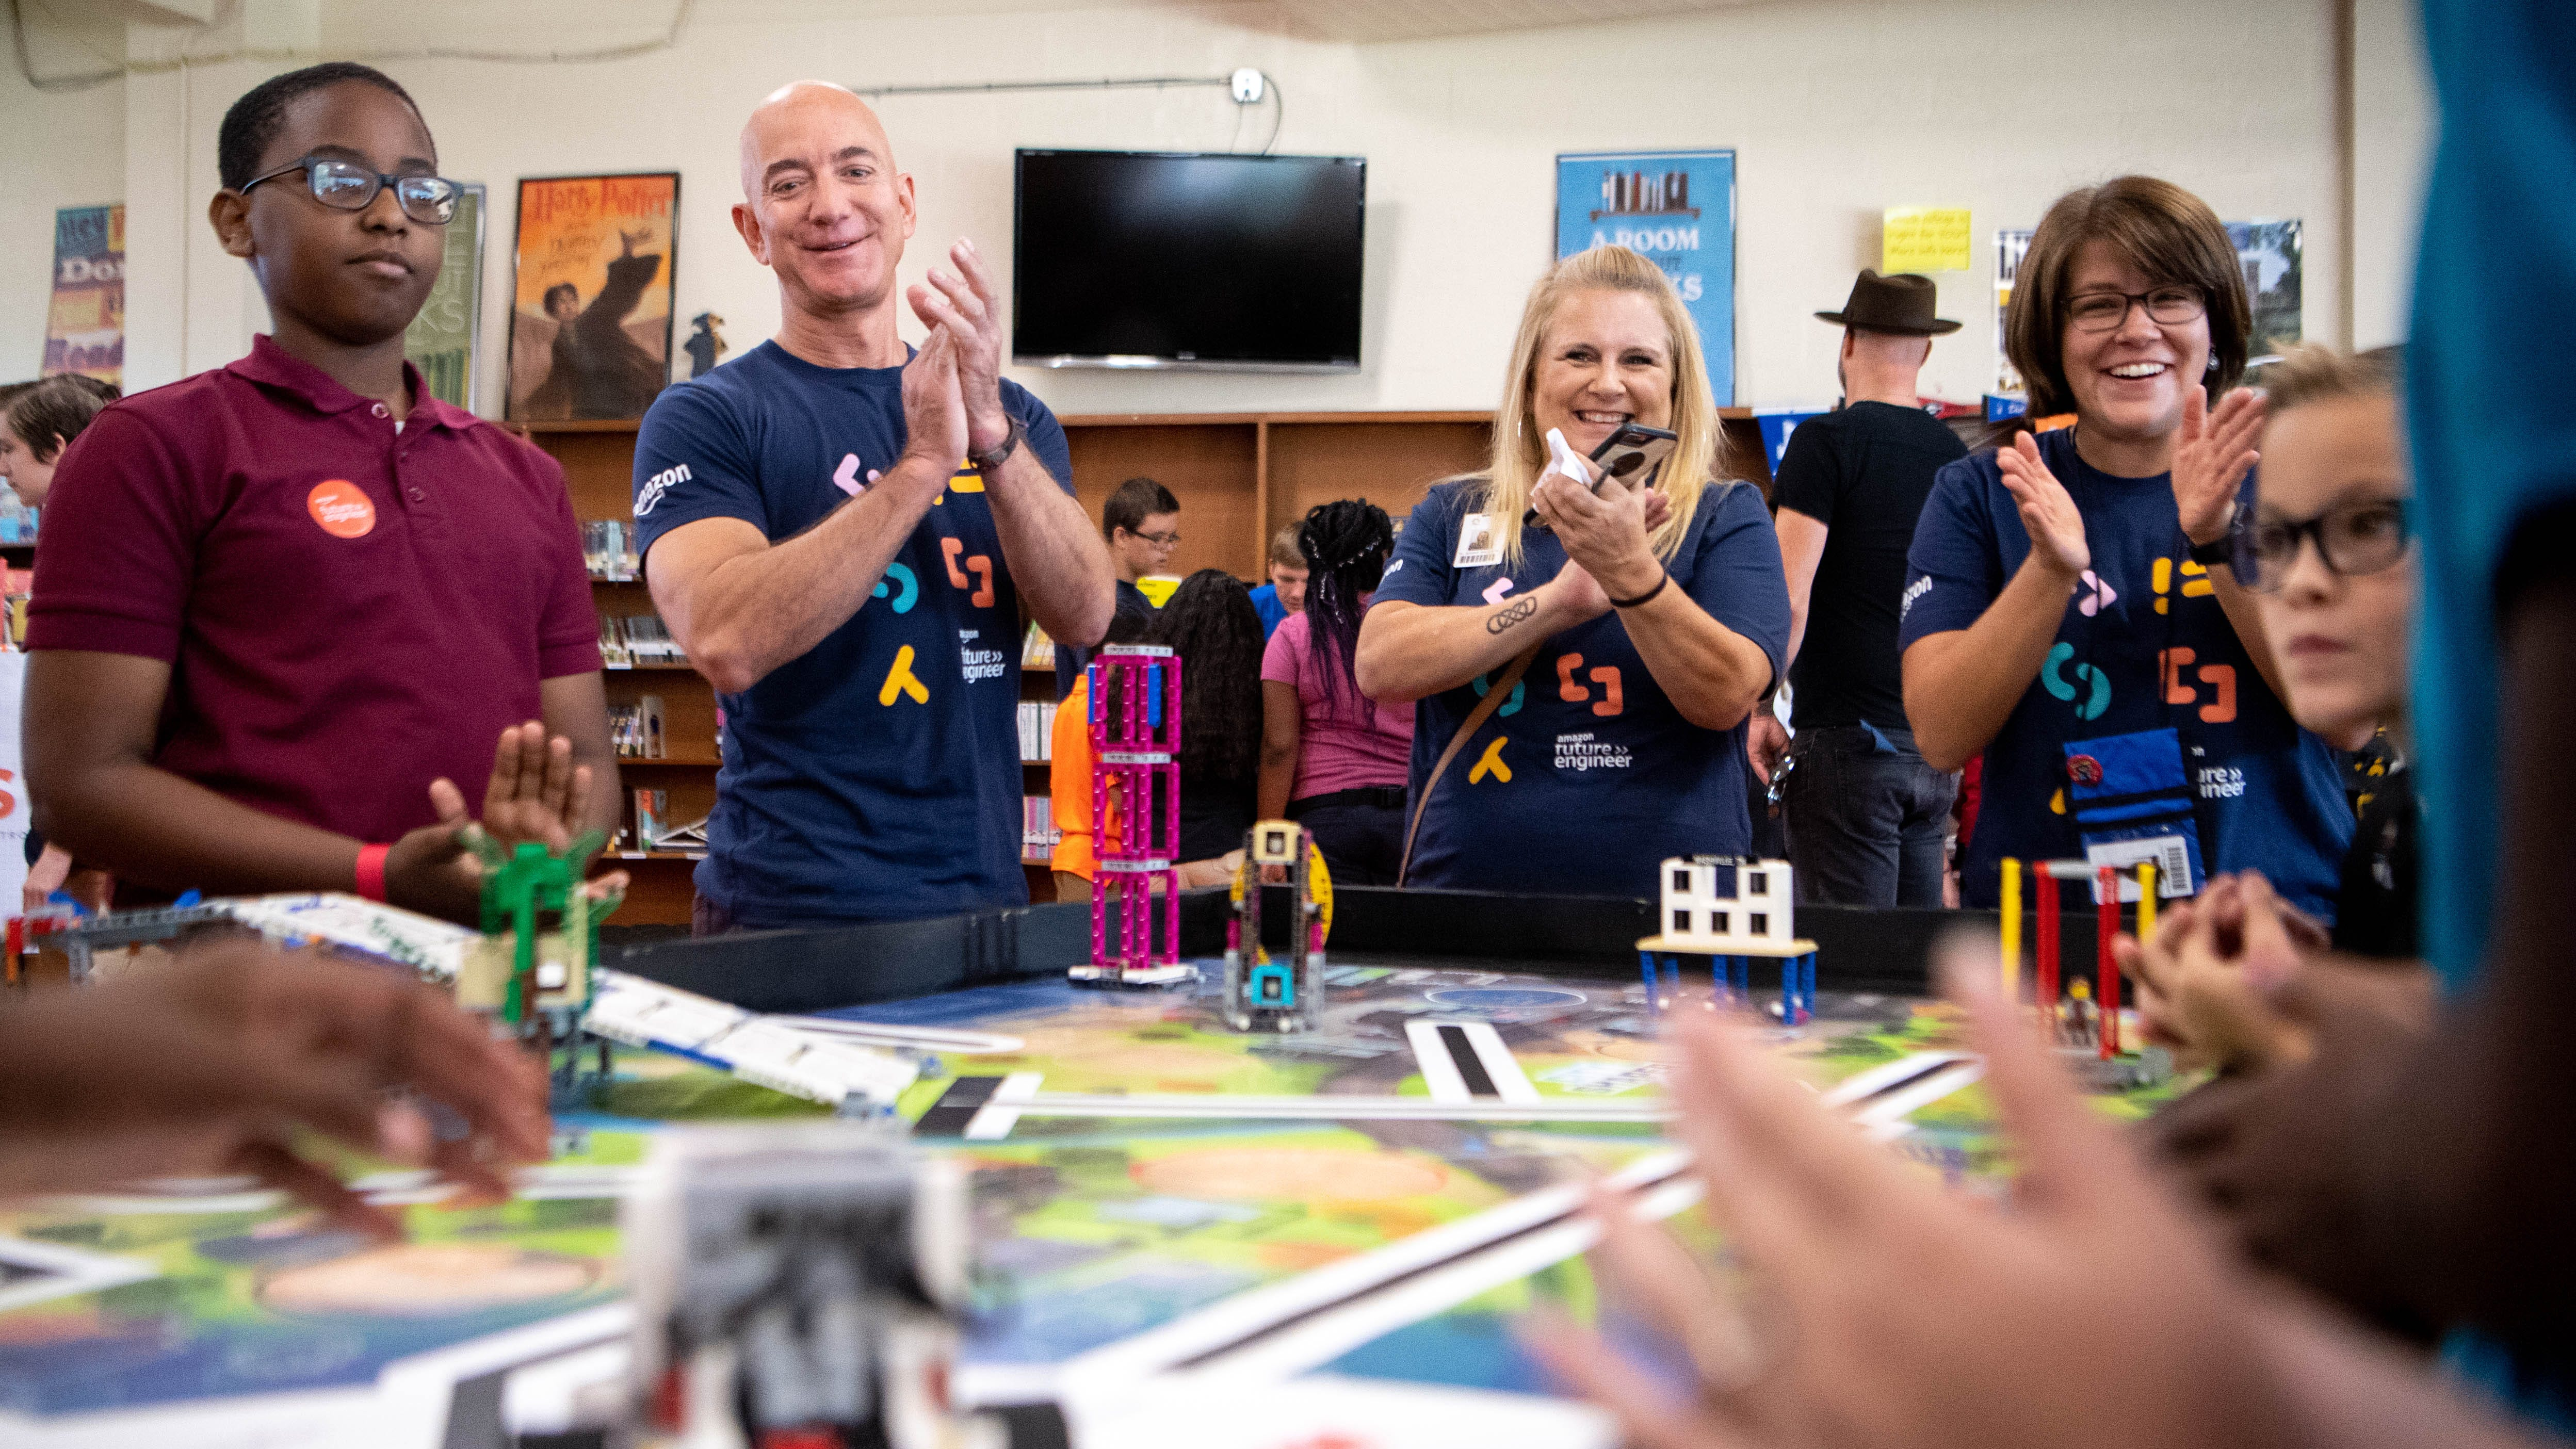 Amazon CEO Jeff Bezos applauds as students work with a robot at Madison Middle School Wednesday, September 11, 2019 in Nashville, Tenn.